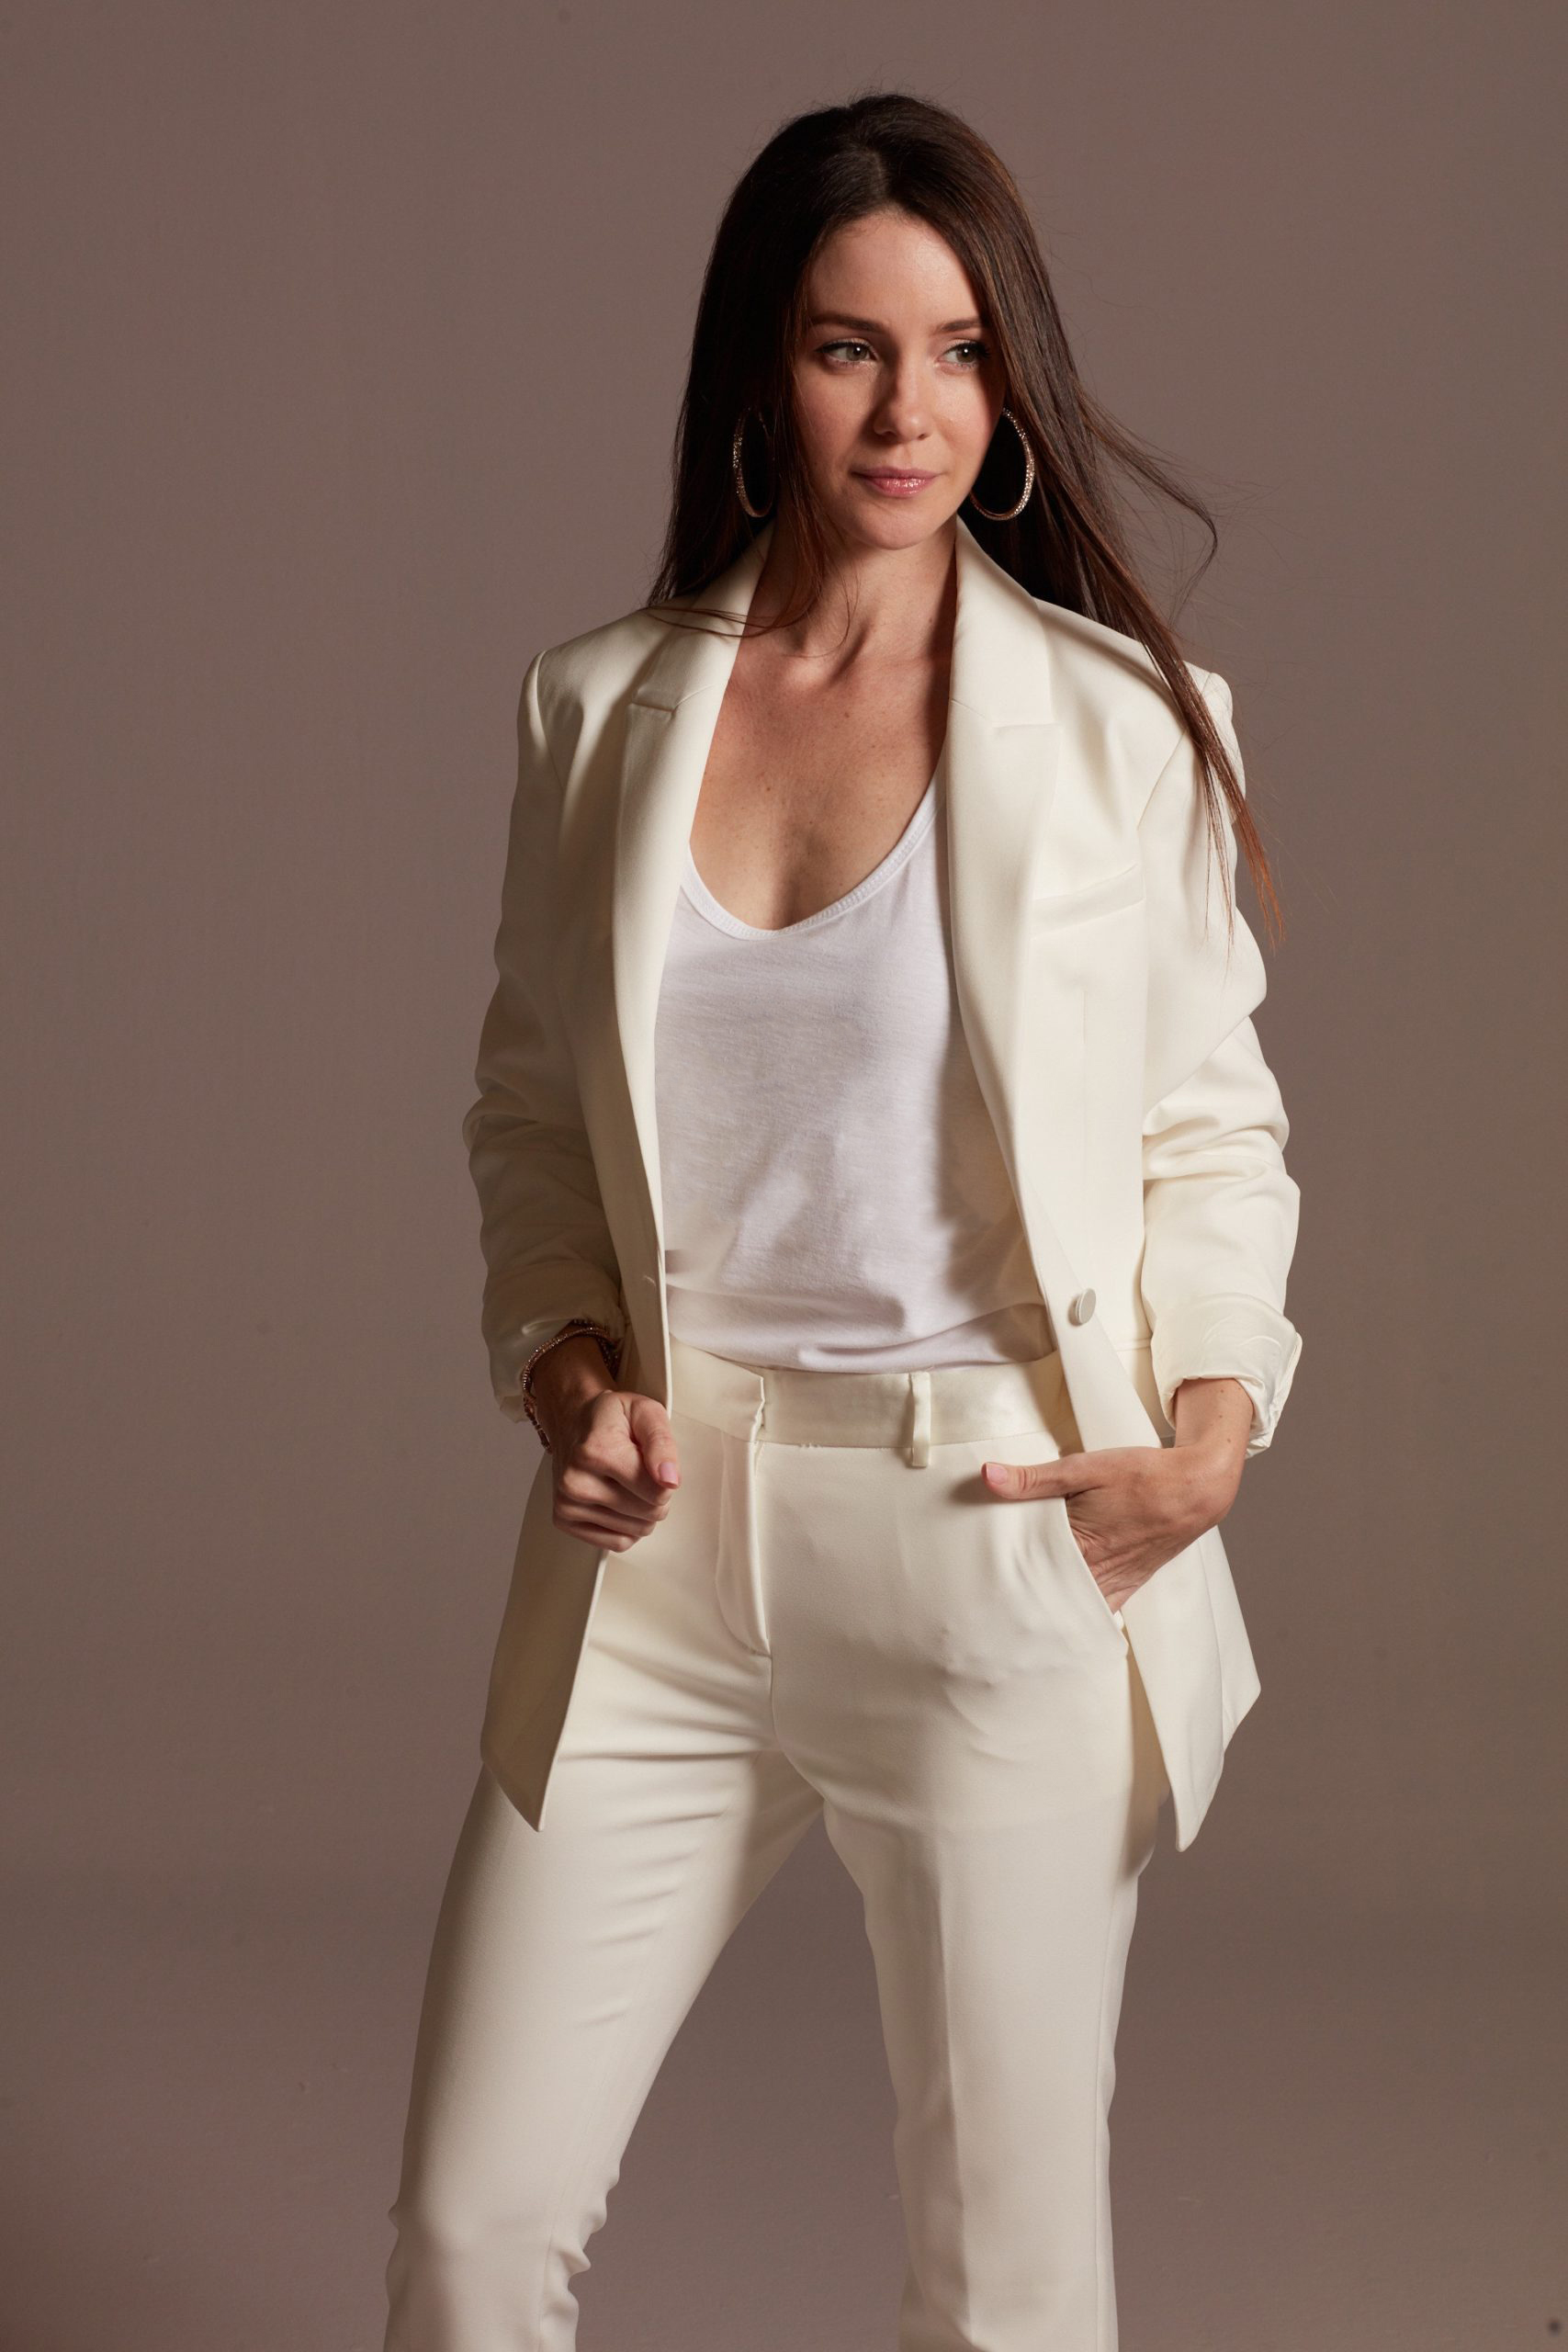 Casually styled white bridal pantsuit